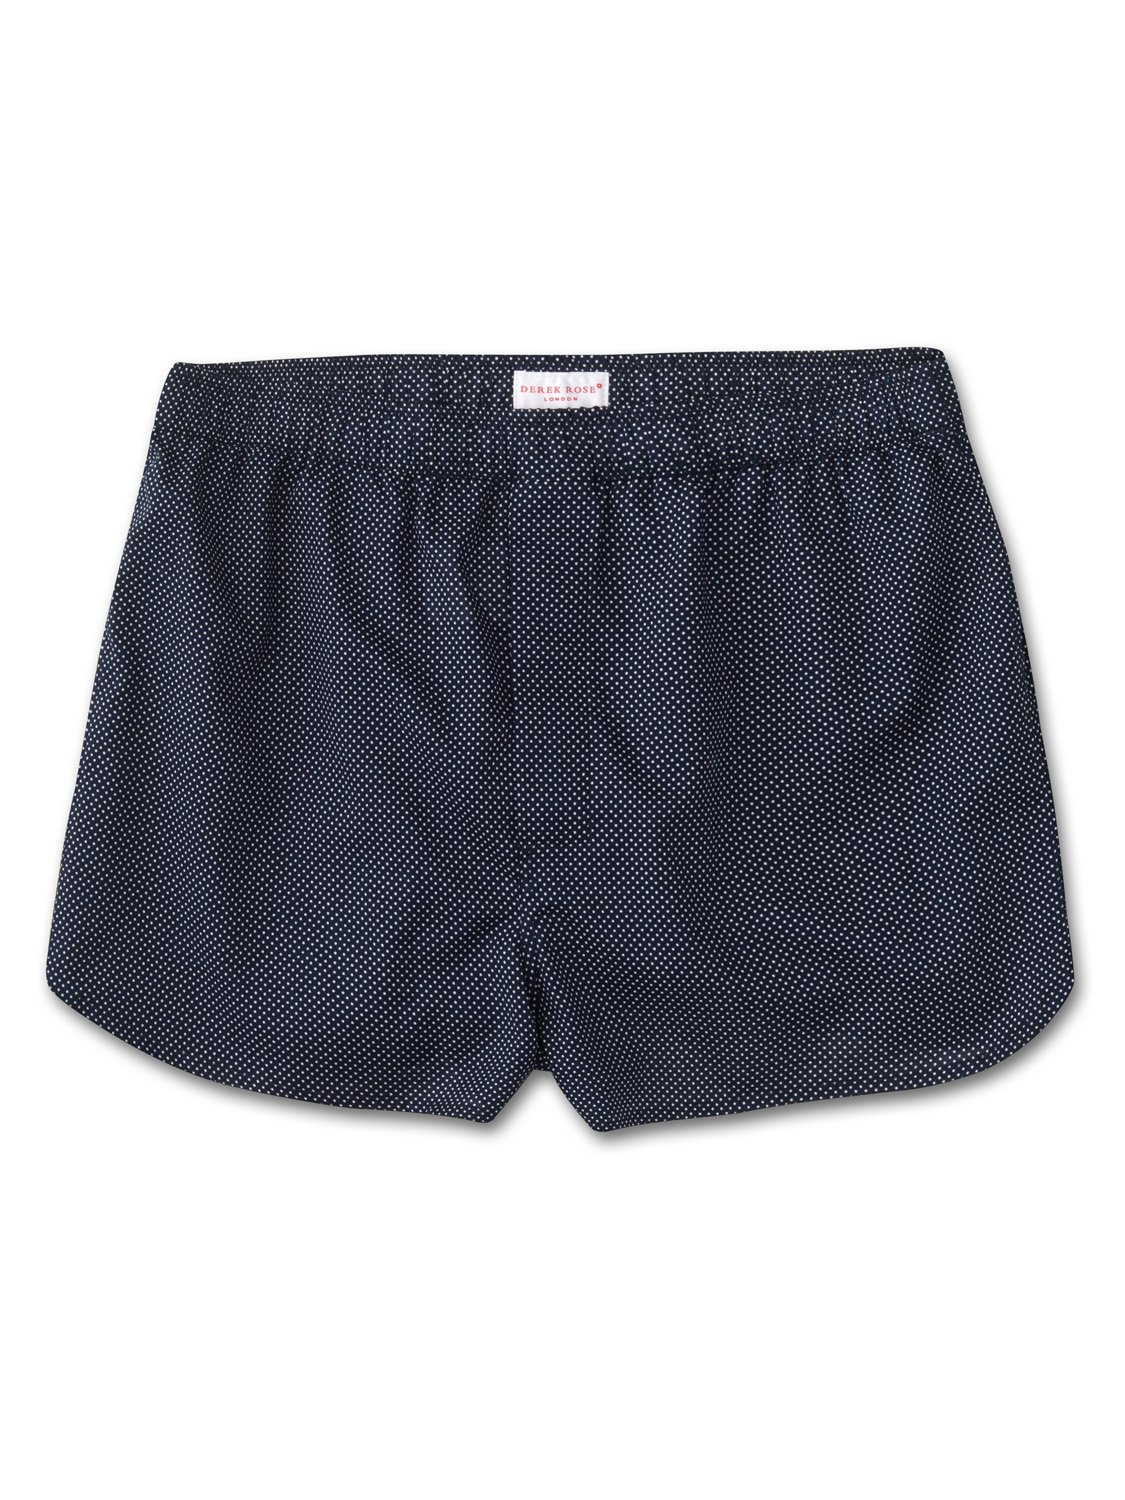 Men's Modern Fit Boxer Shorts Plaza 21 Pure Cotton Batiste Navy